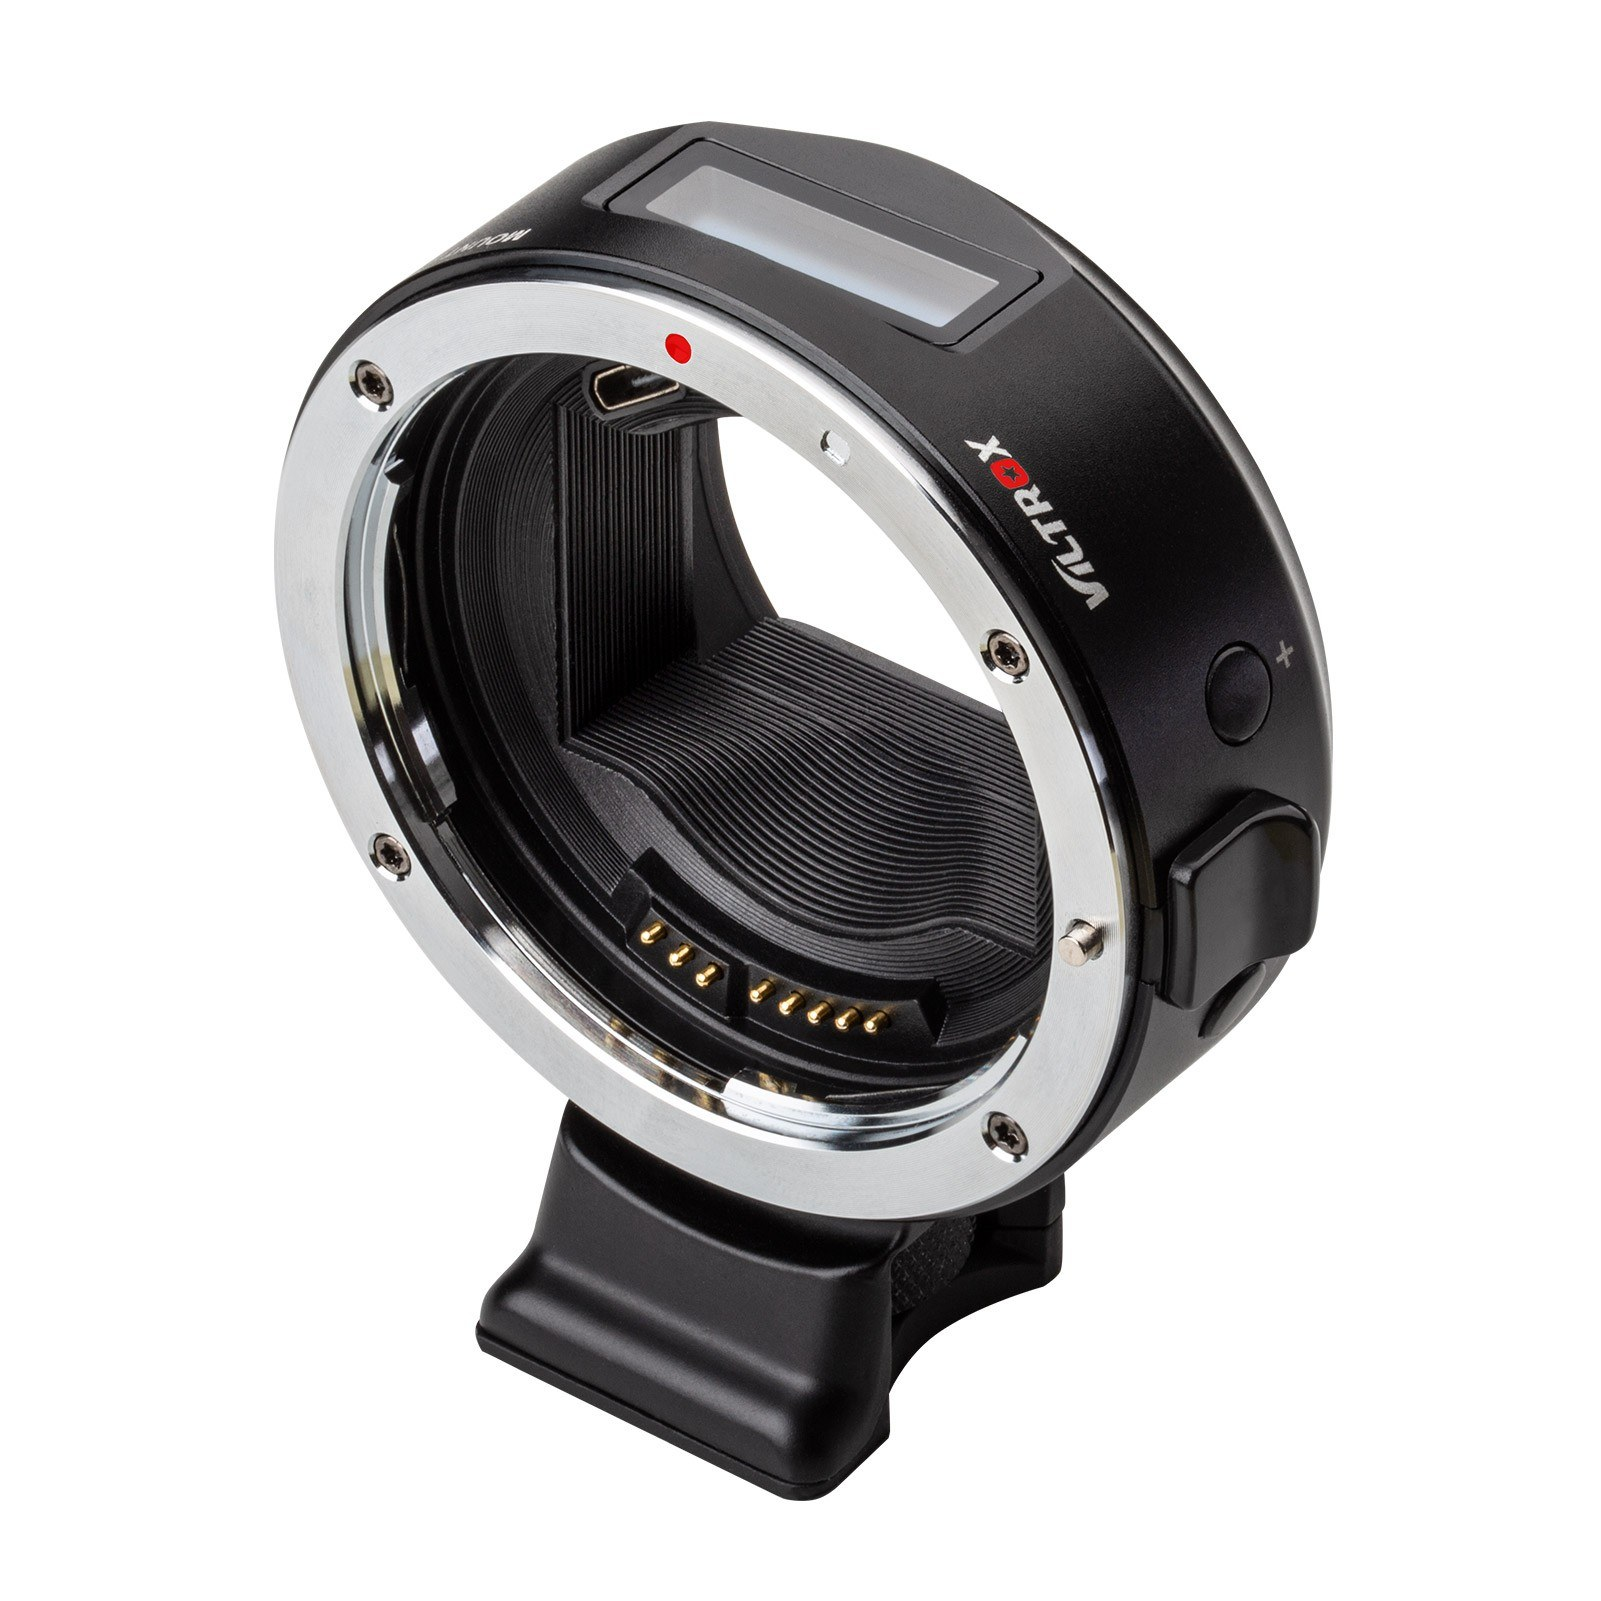 Tomtop - 47% OFF VILTROX EF-E5 Upgraded Camera Lens Mount Adapter, Free Shipping $169.99